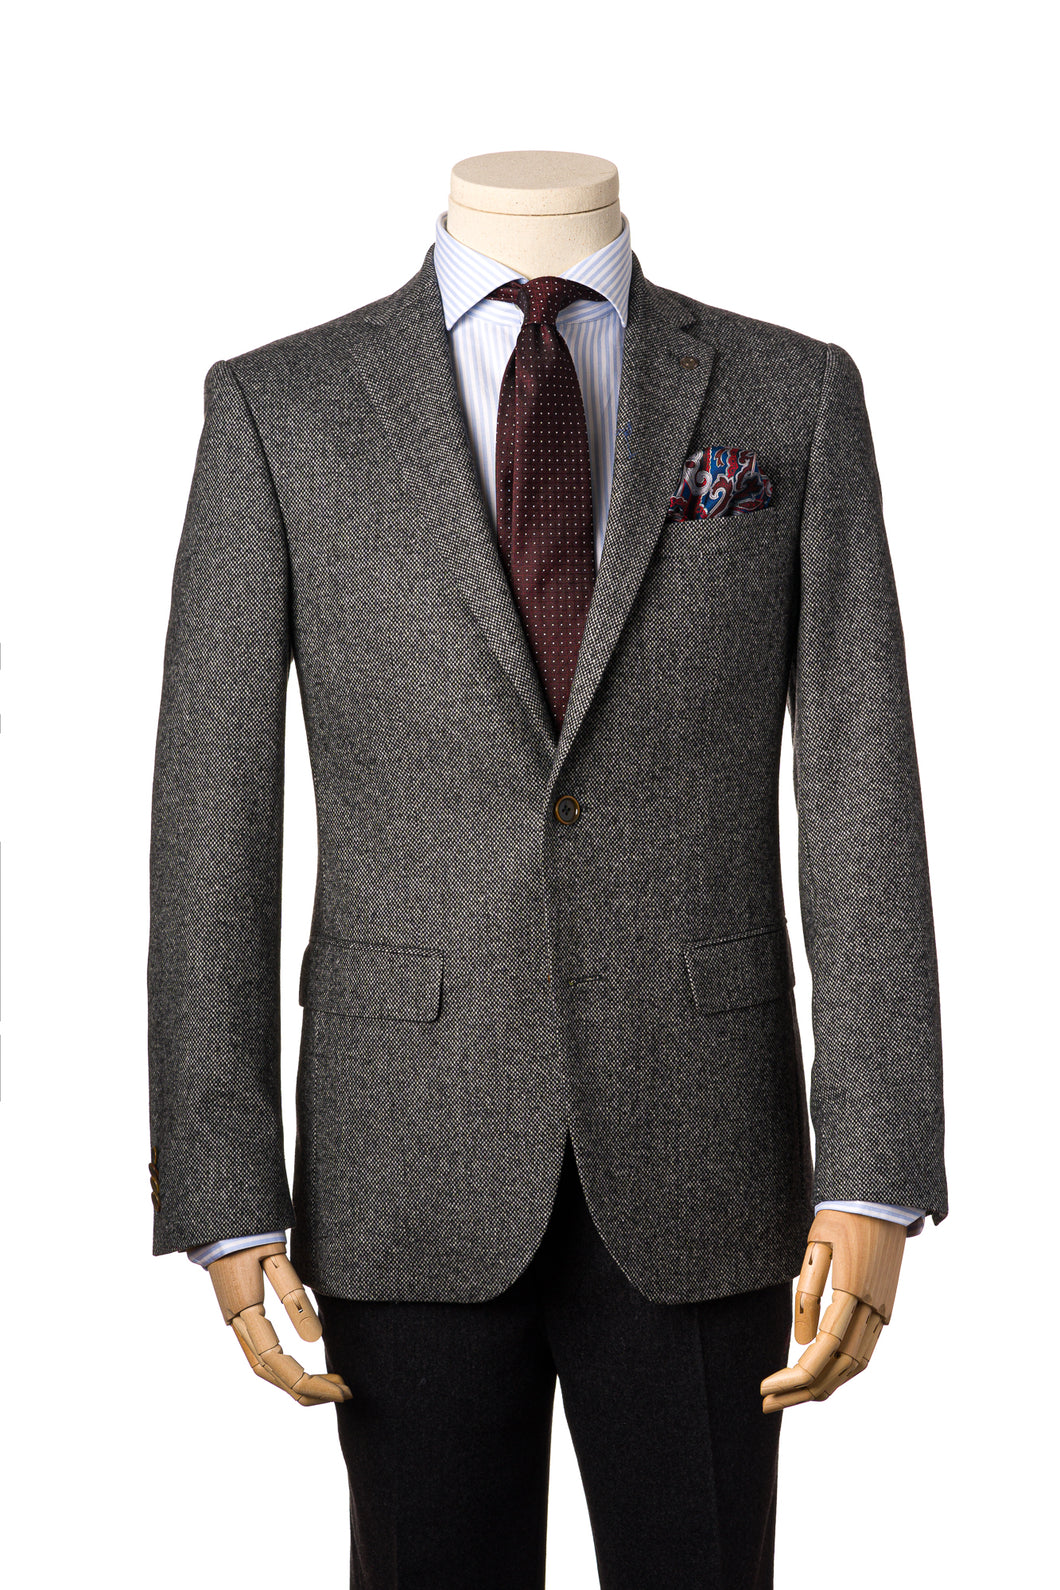 Modern Grey Tweed Jacket by Daniel Hechter